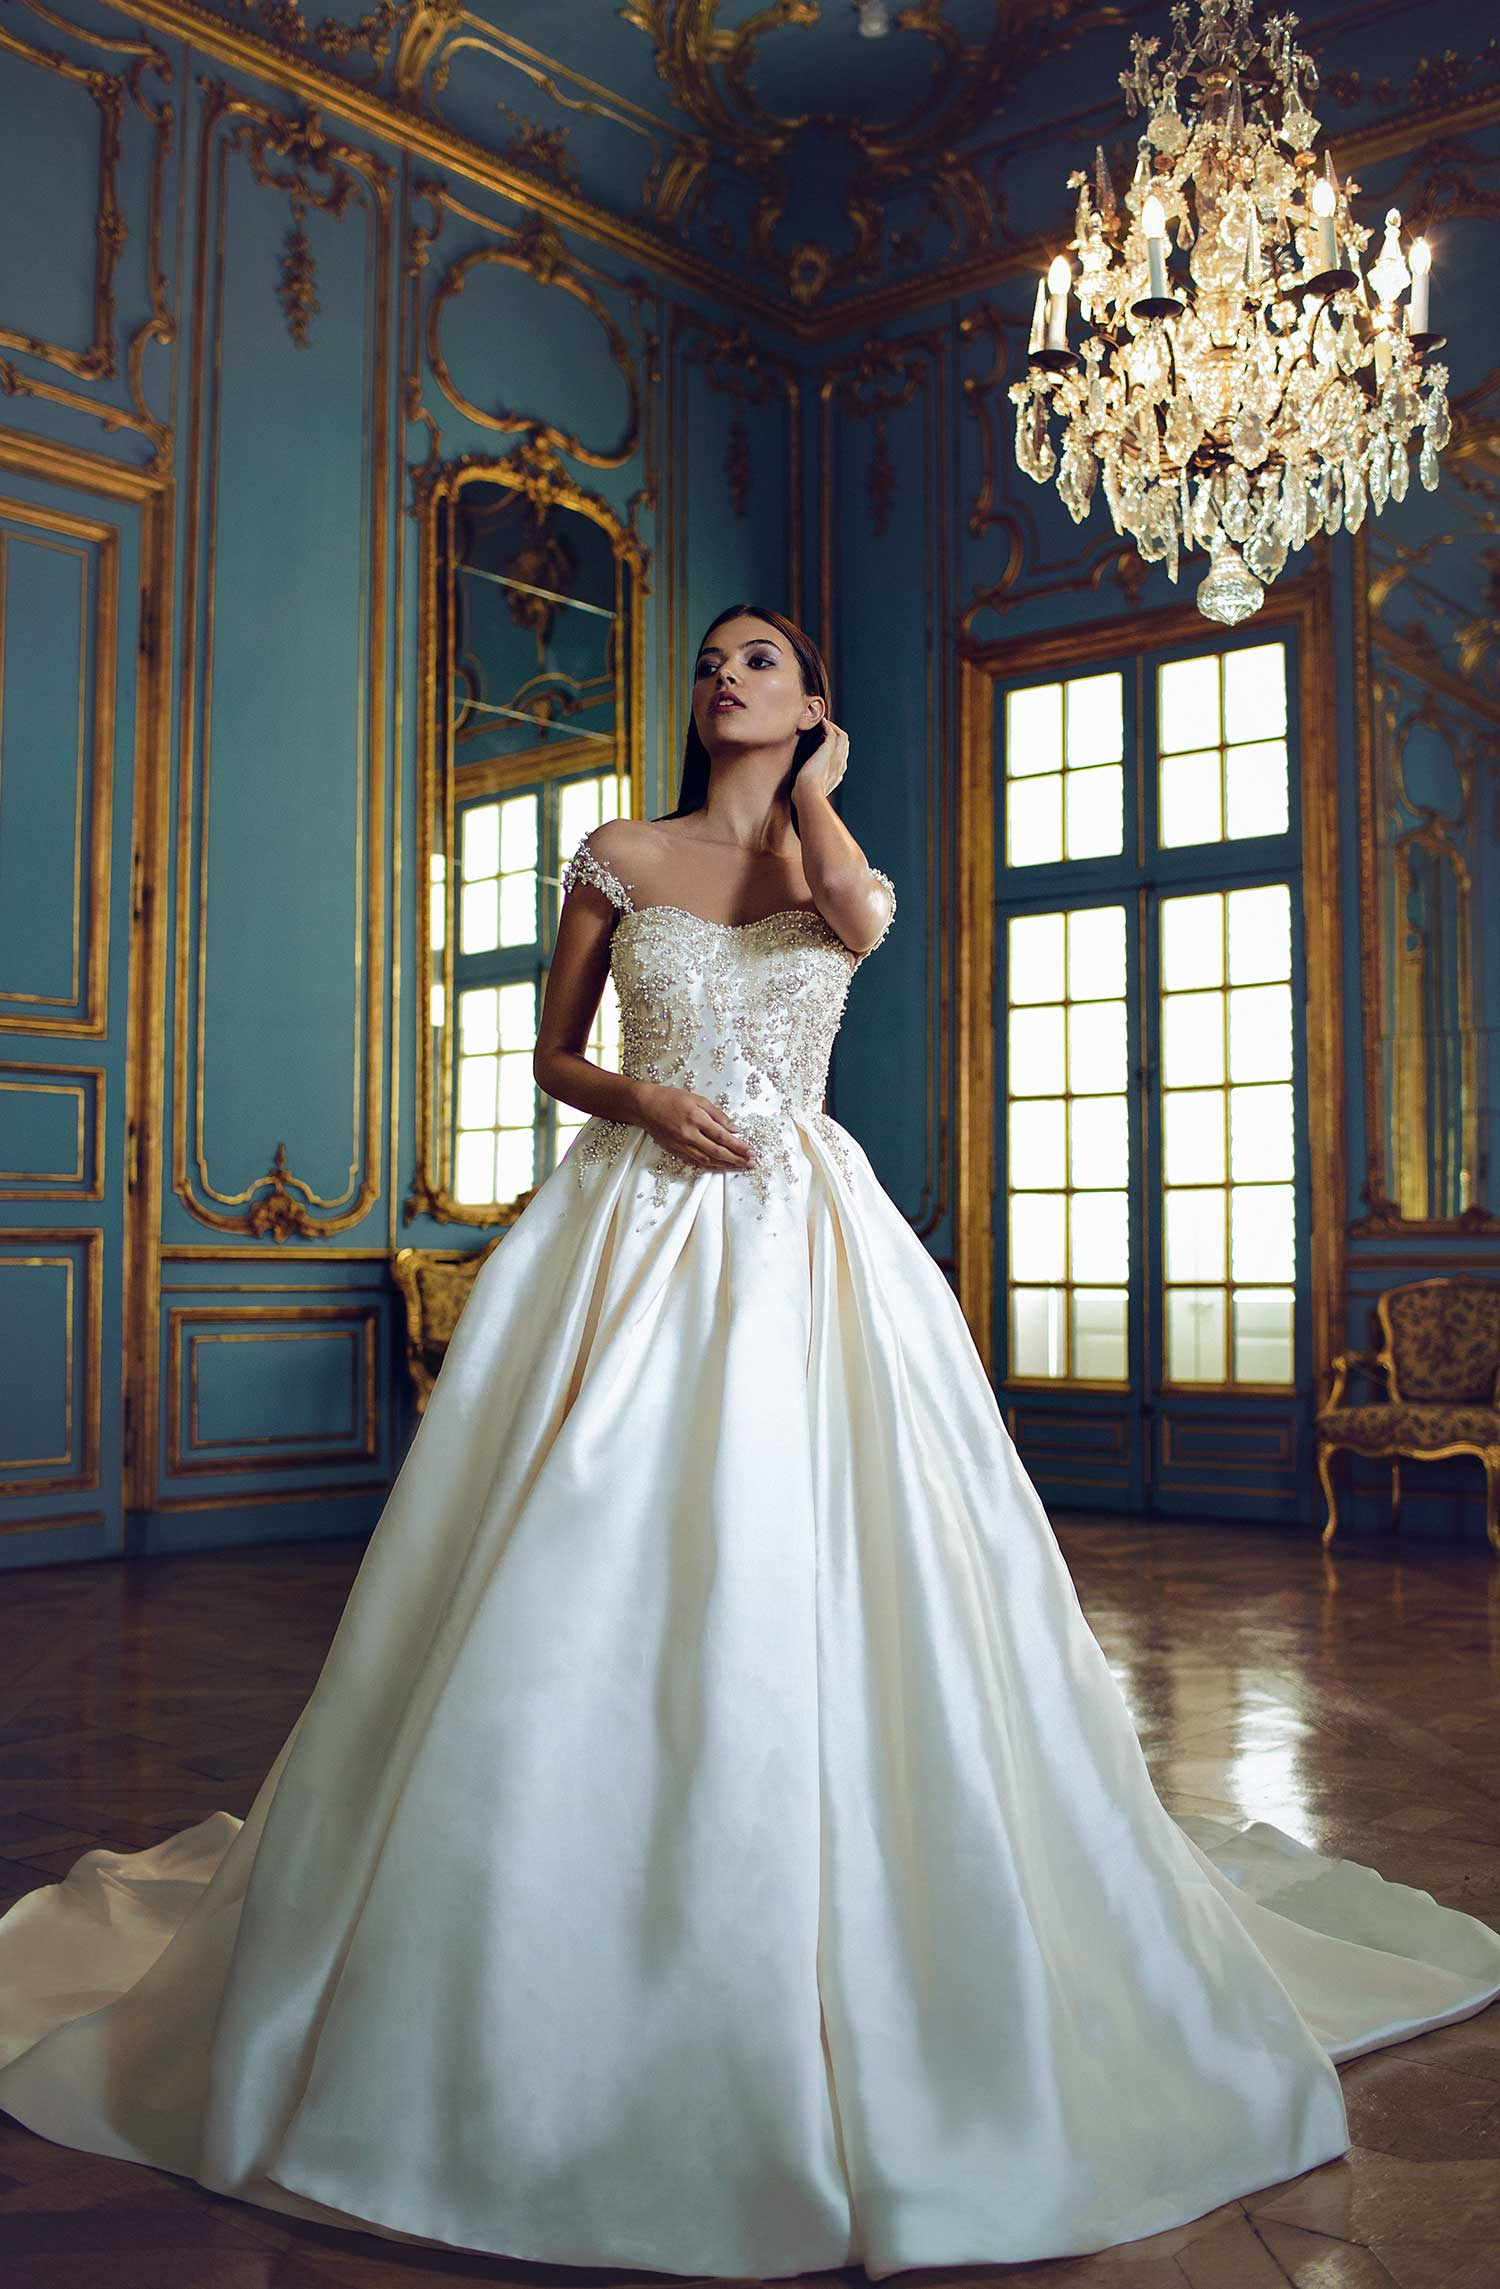 Satin wedding dress with pearl details